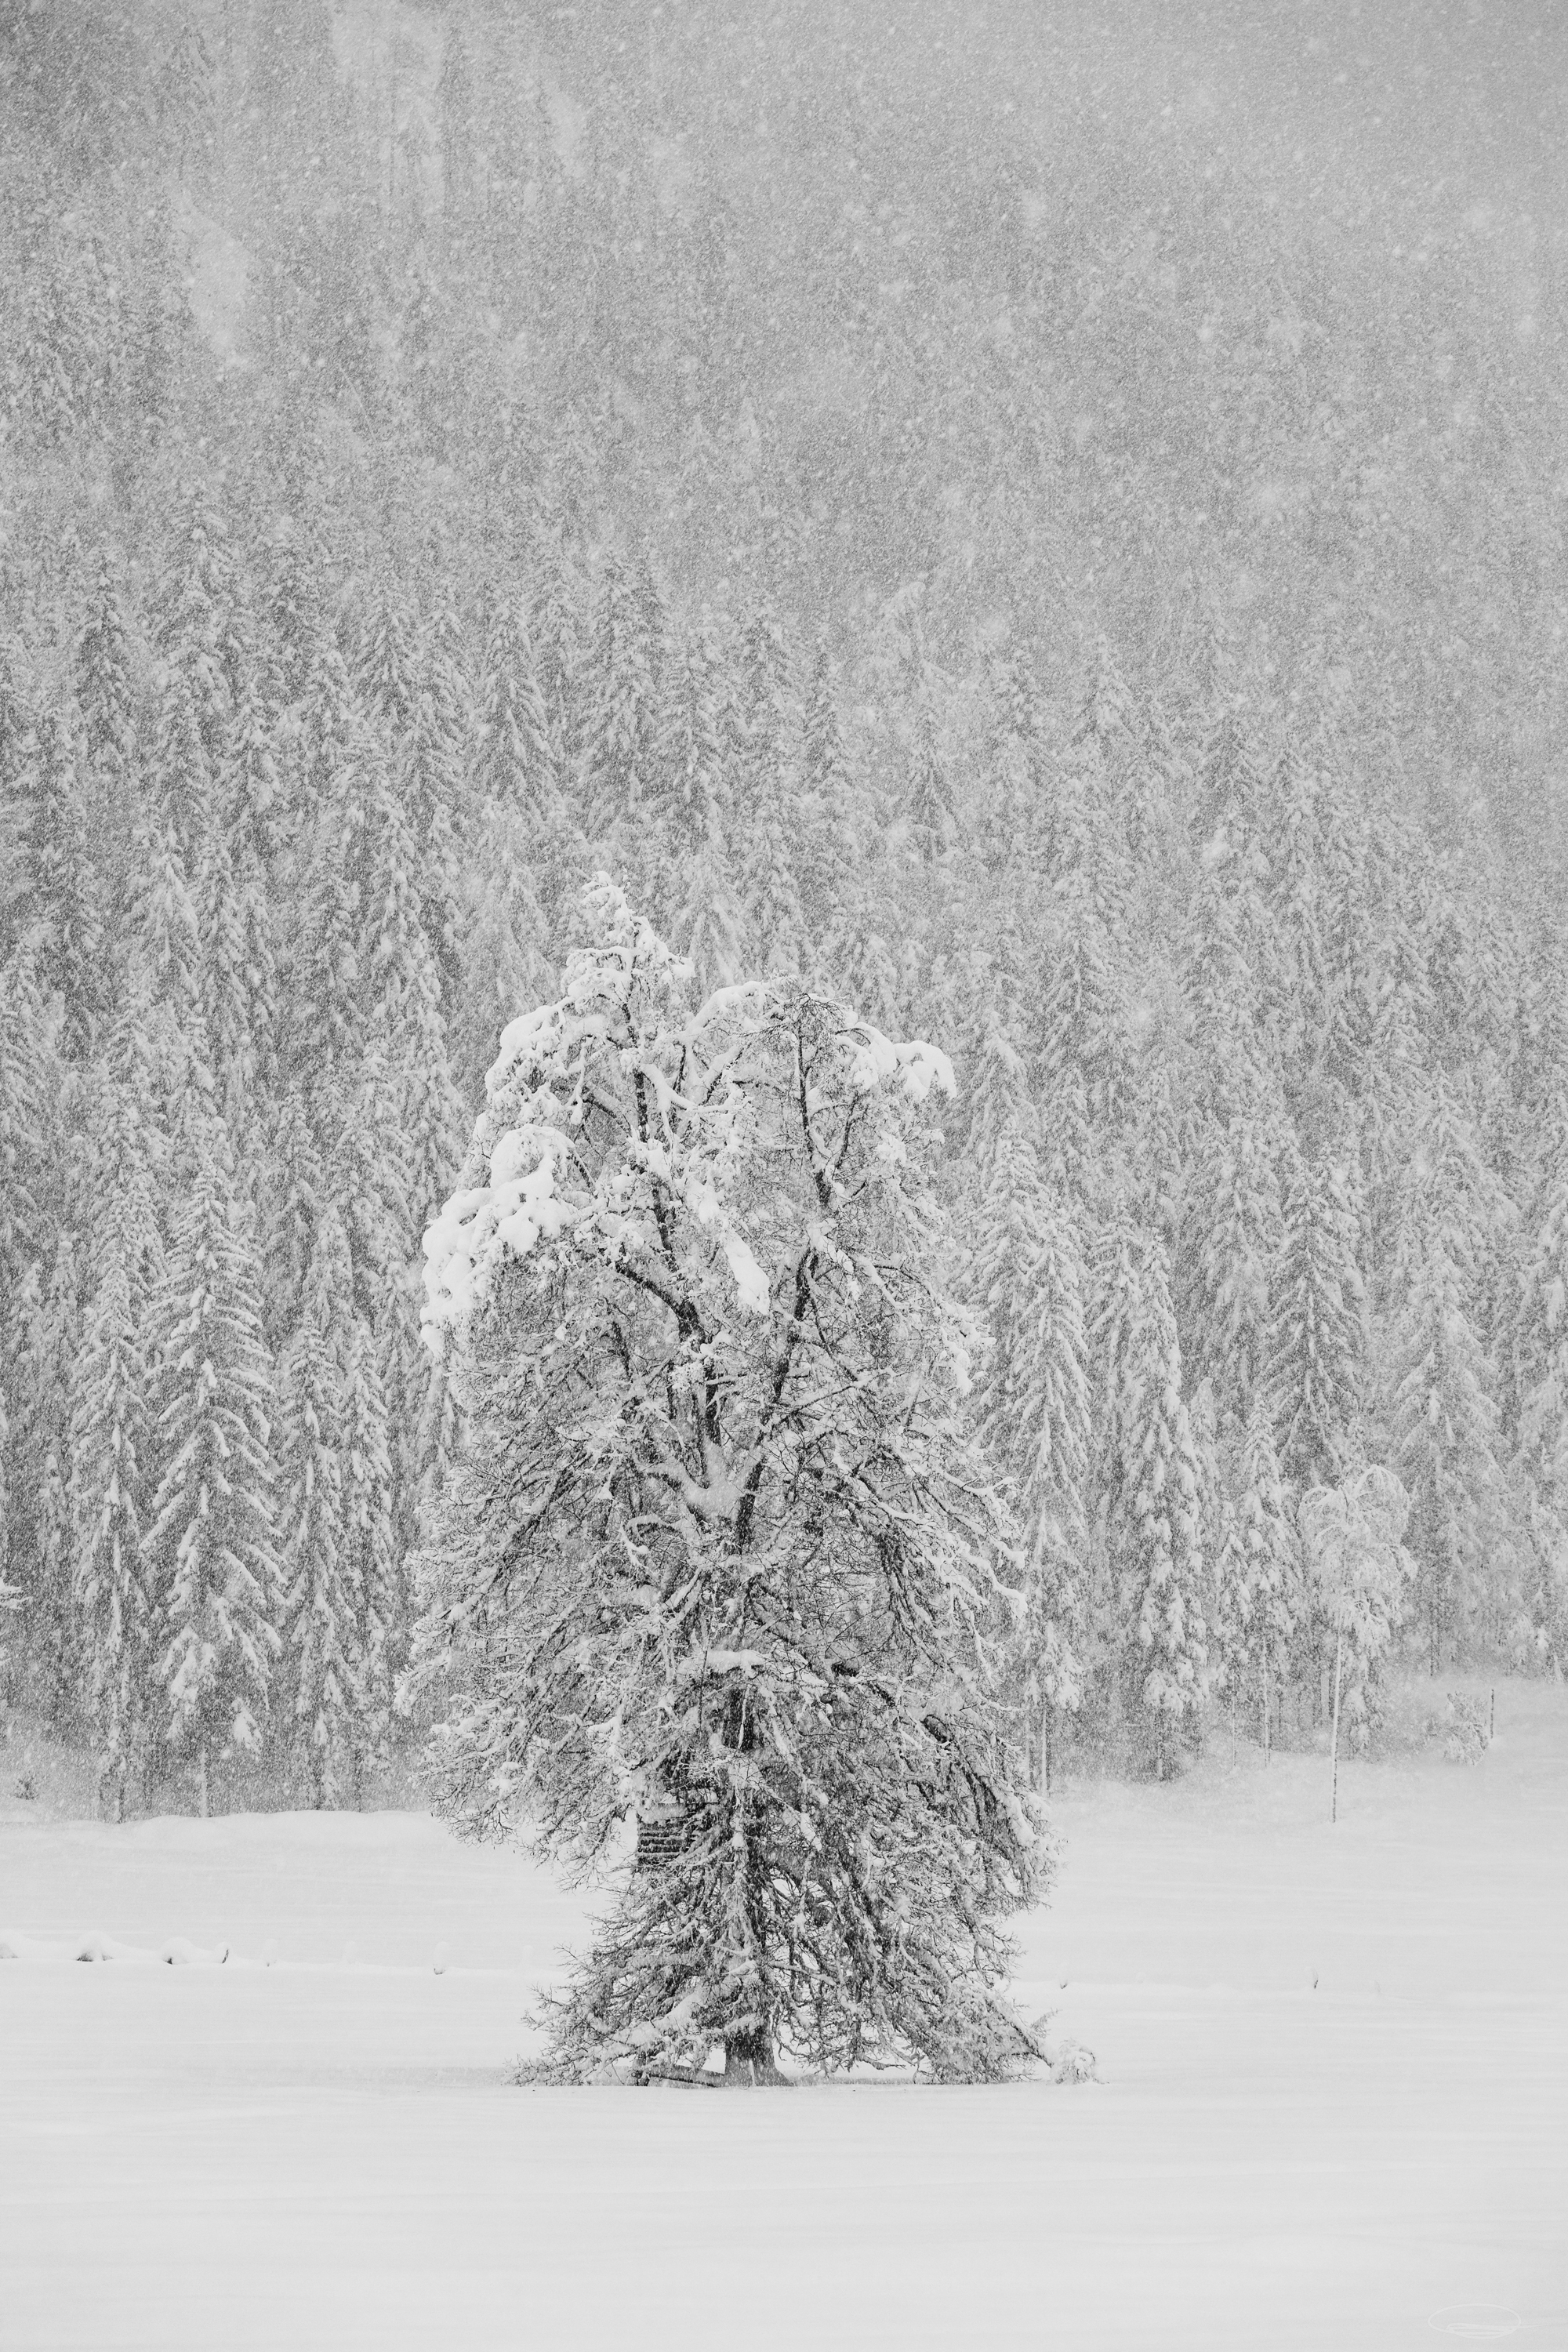 Snowy tree at the Farchtensee